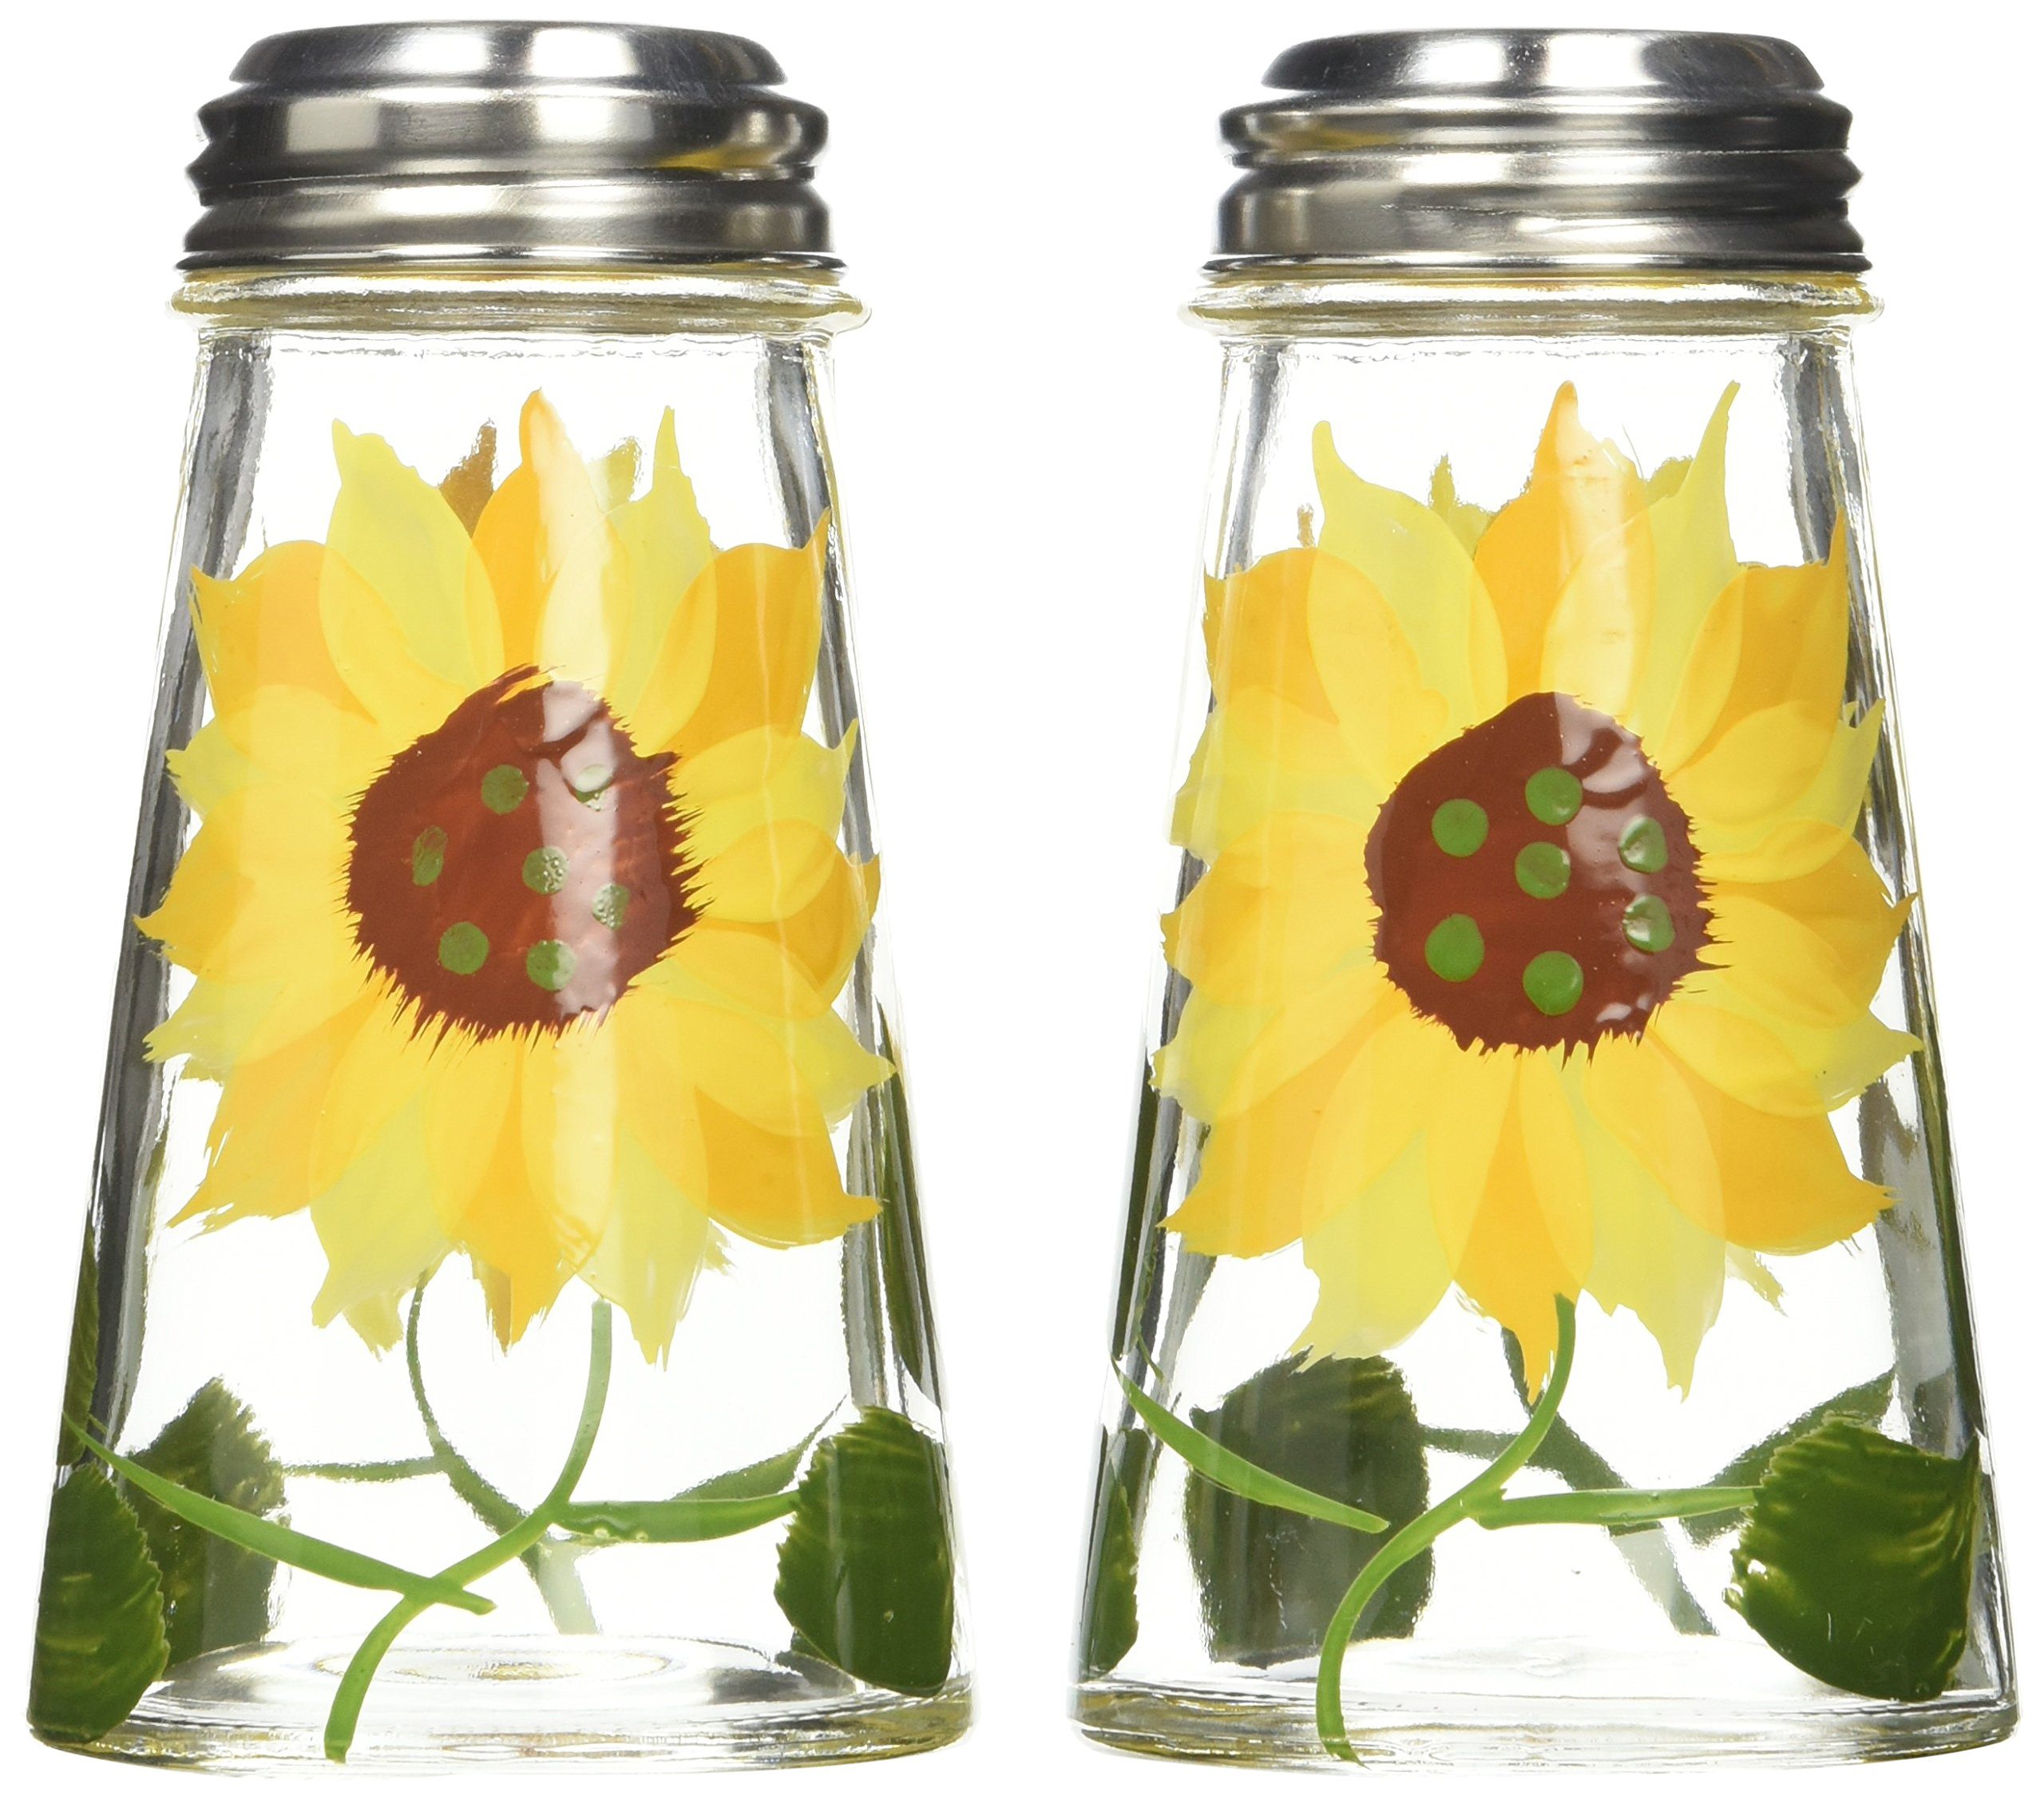 Grant Howard 39013 Hand Painted Tapered Salt and Pepper Shaker Set, Sunflowers, Yellow, 2, by Grant Howard